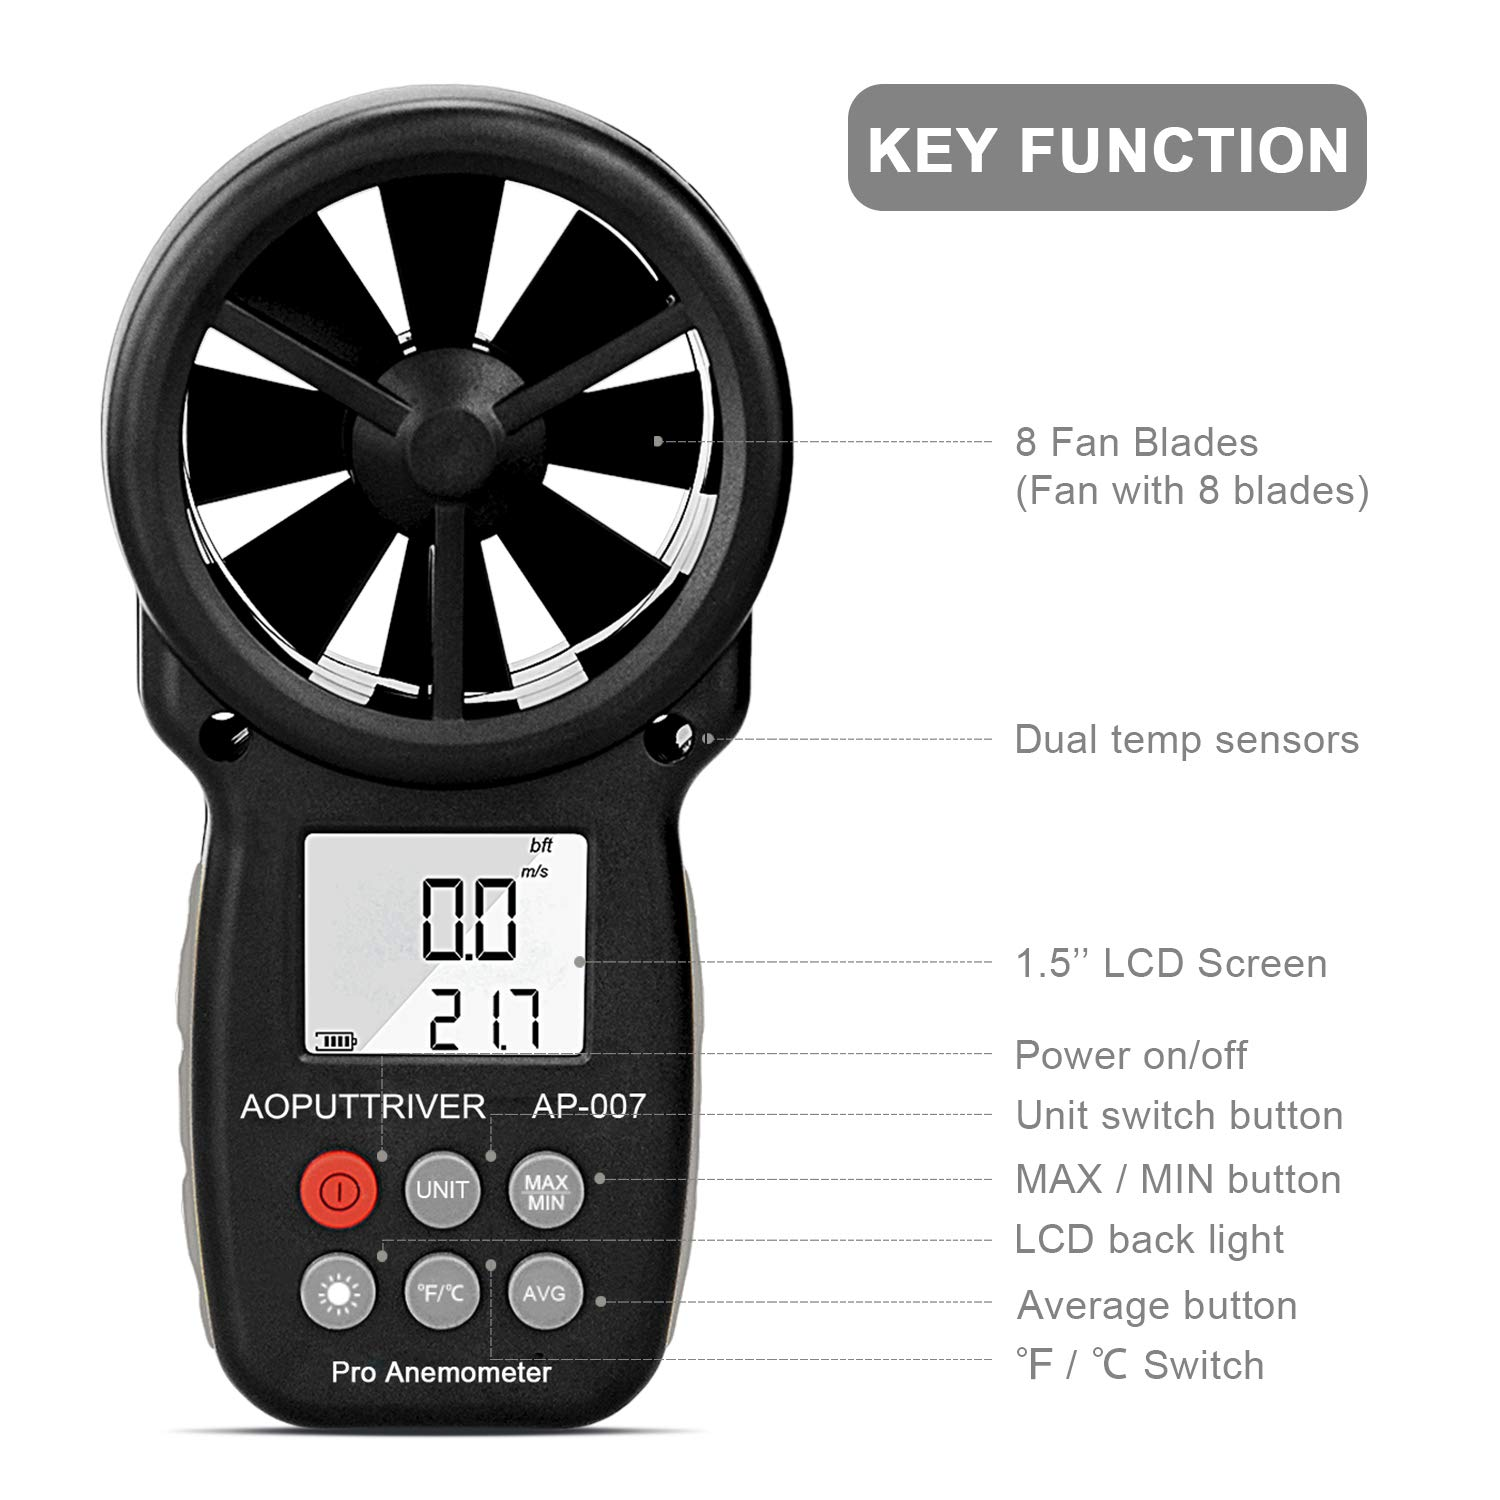 Max//Average//Current and Real Time Measure which with an extendable vane Air Flow Digital Anemometer Handheld with LCD back light Display for Air Velocity Temperature